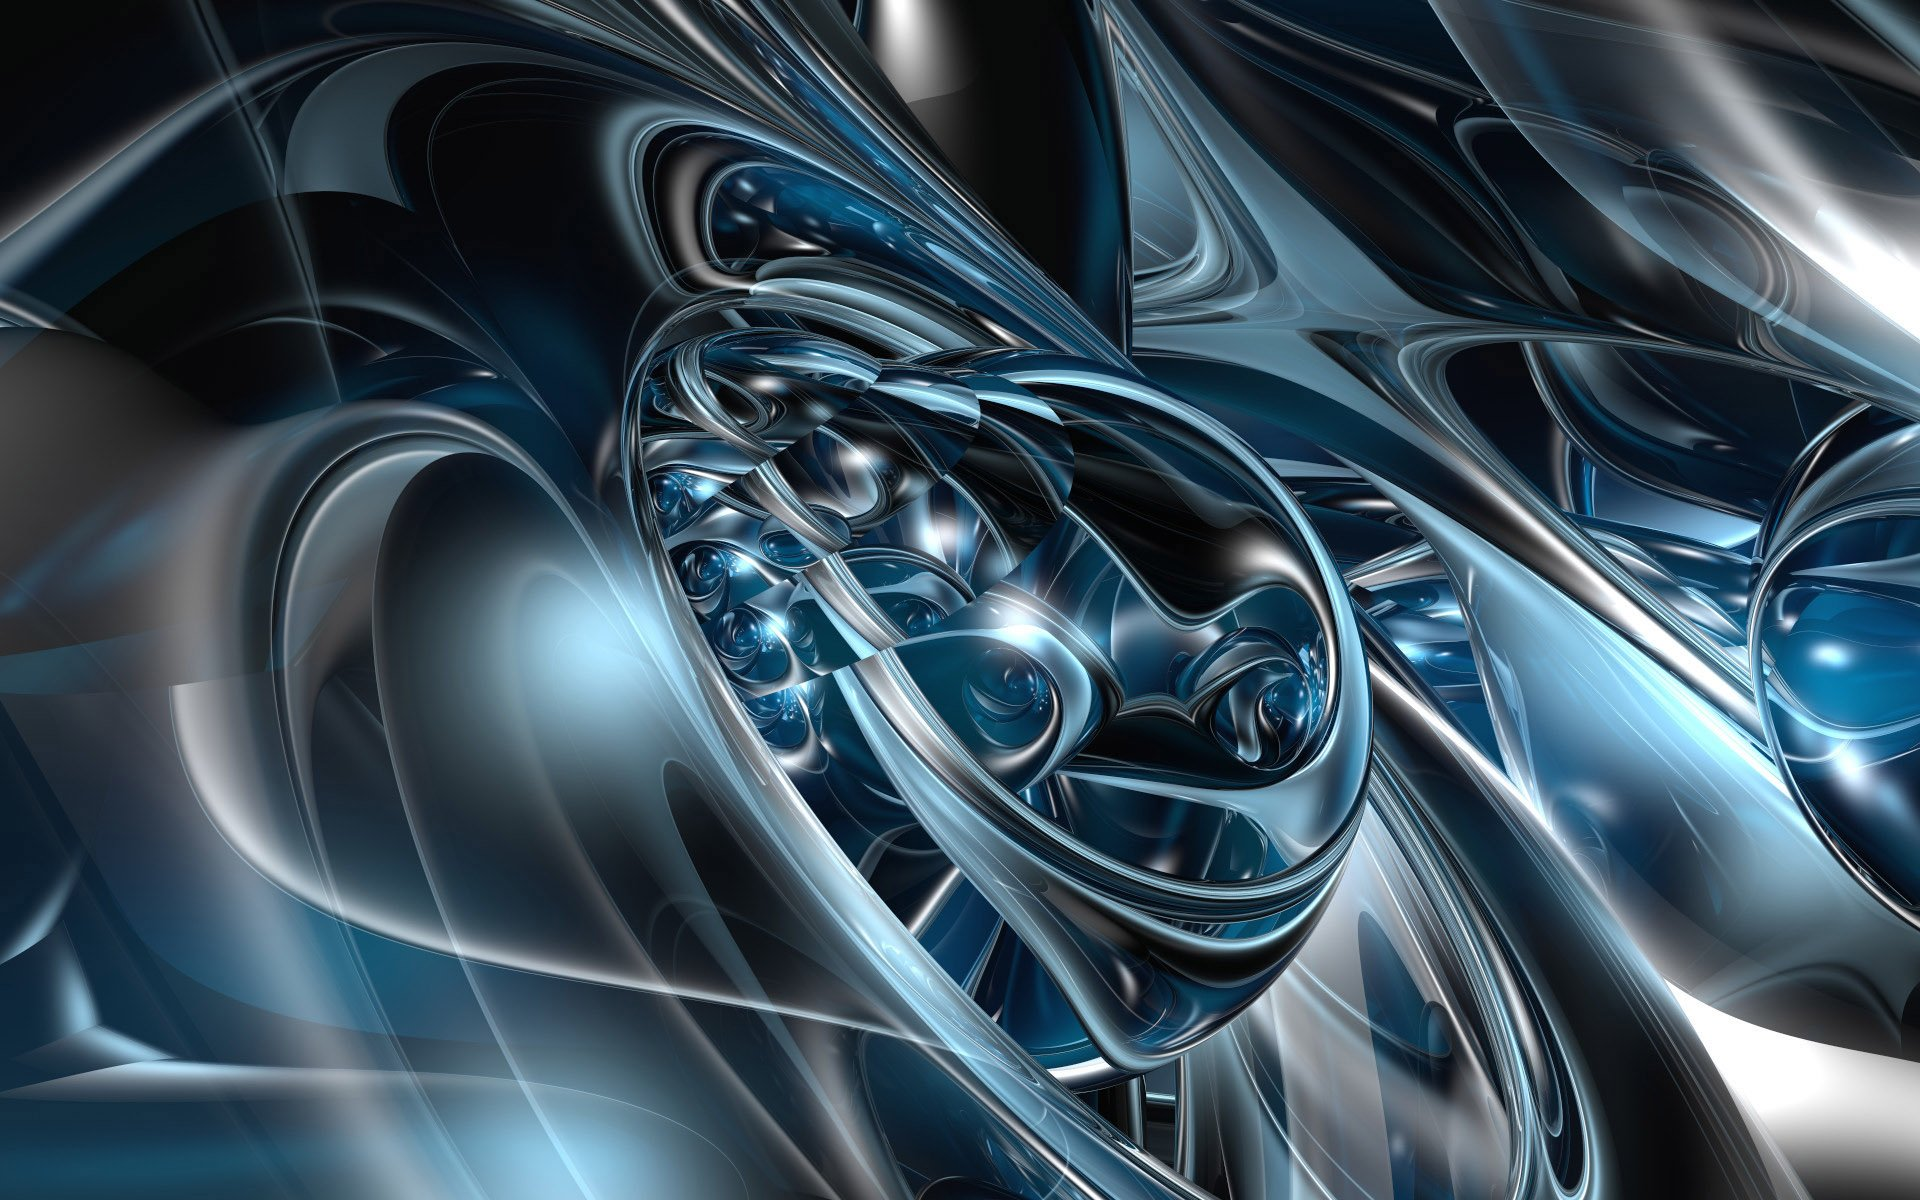 CGI - Abstract  3D Digital CGI Wallpaper